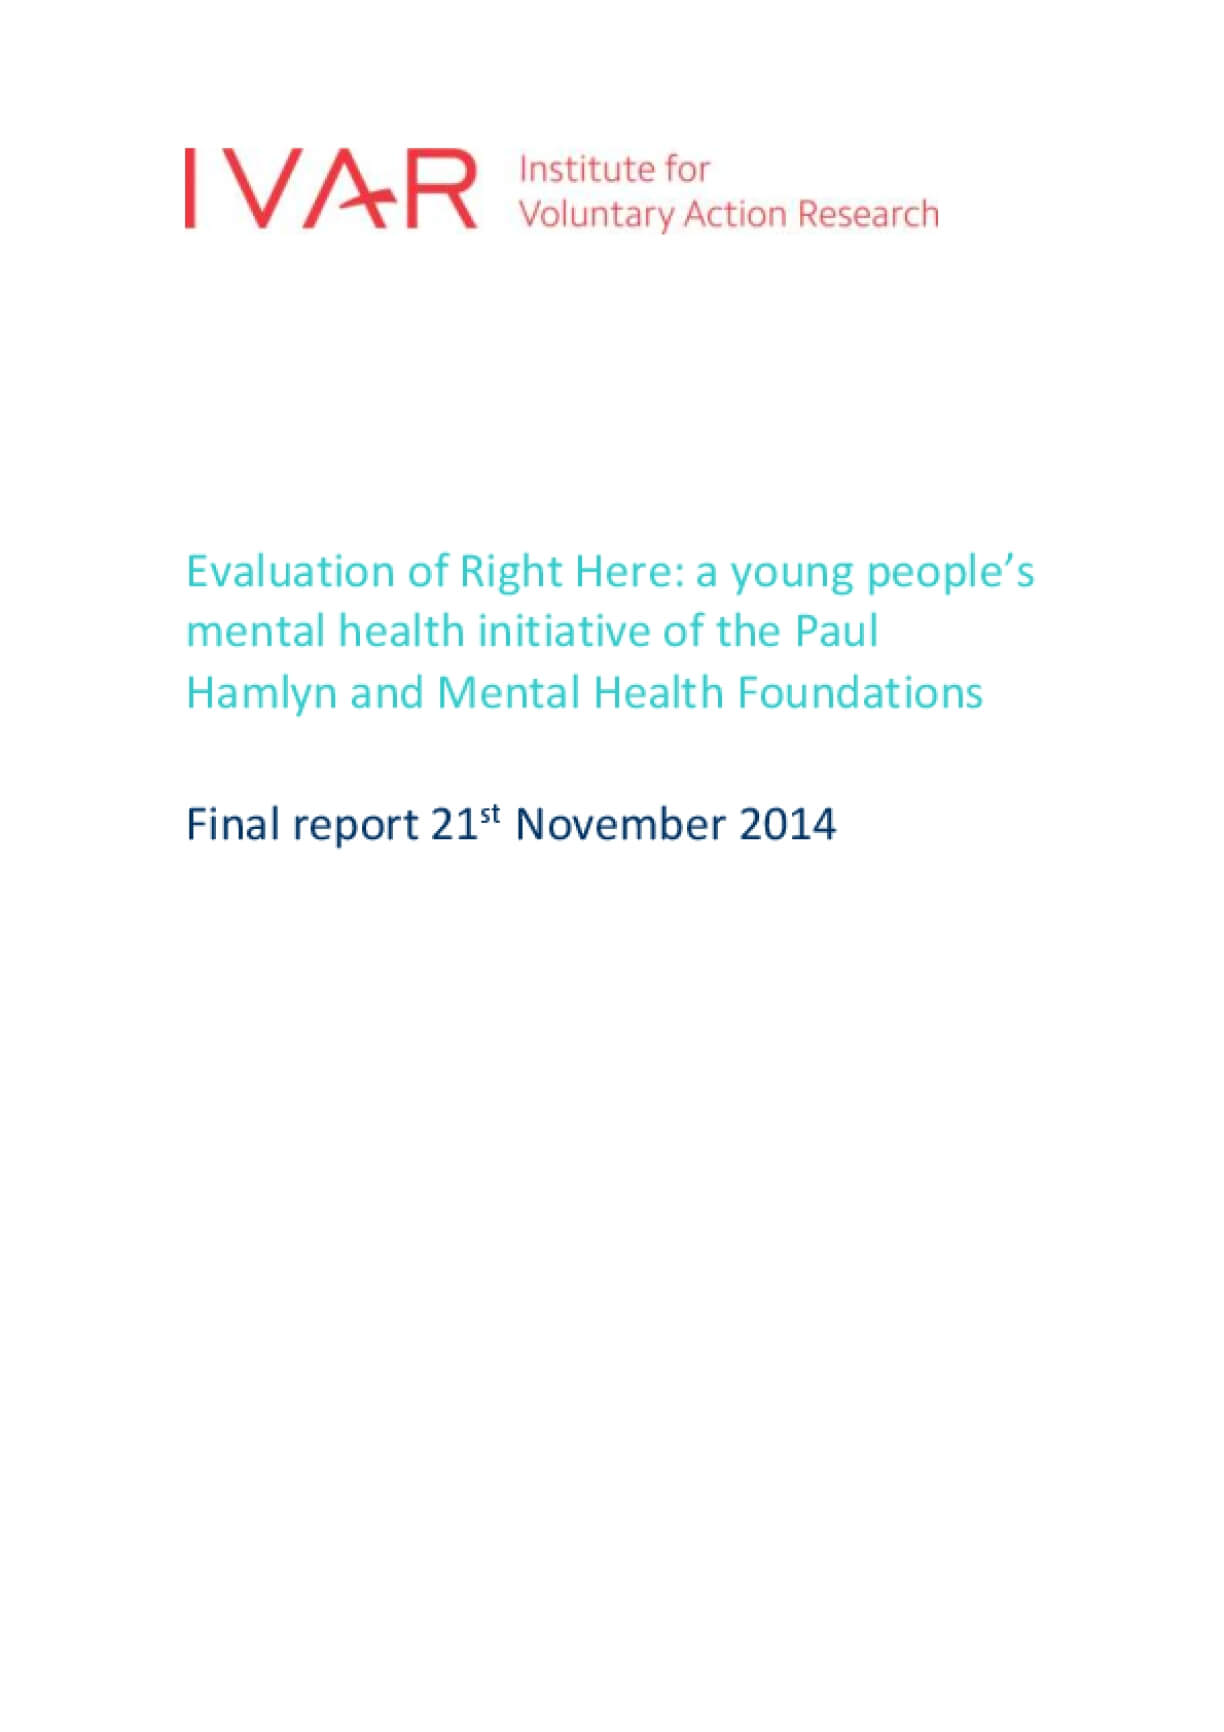 Evaluation of Right Here: A Young People's Mental Health Initiative of the Paul Hamlyn and Mental Health Foundations